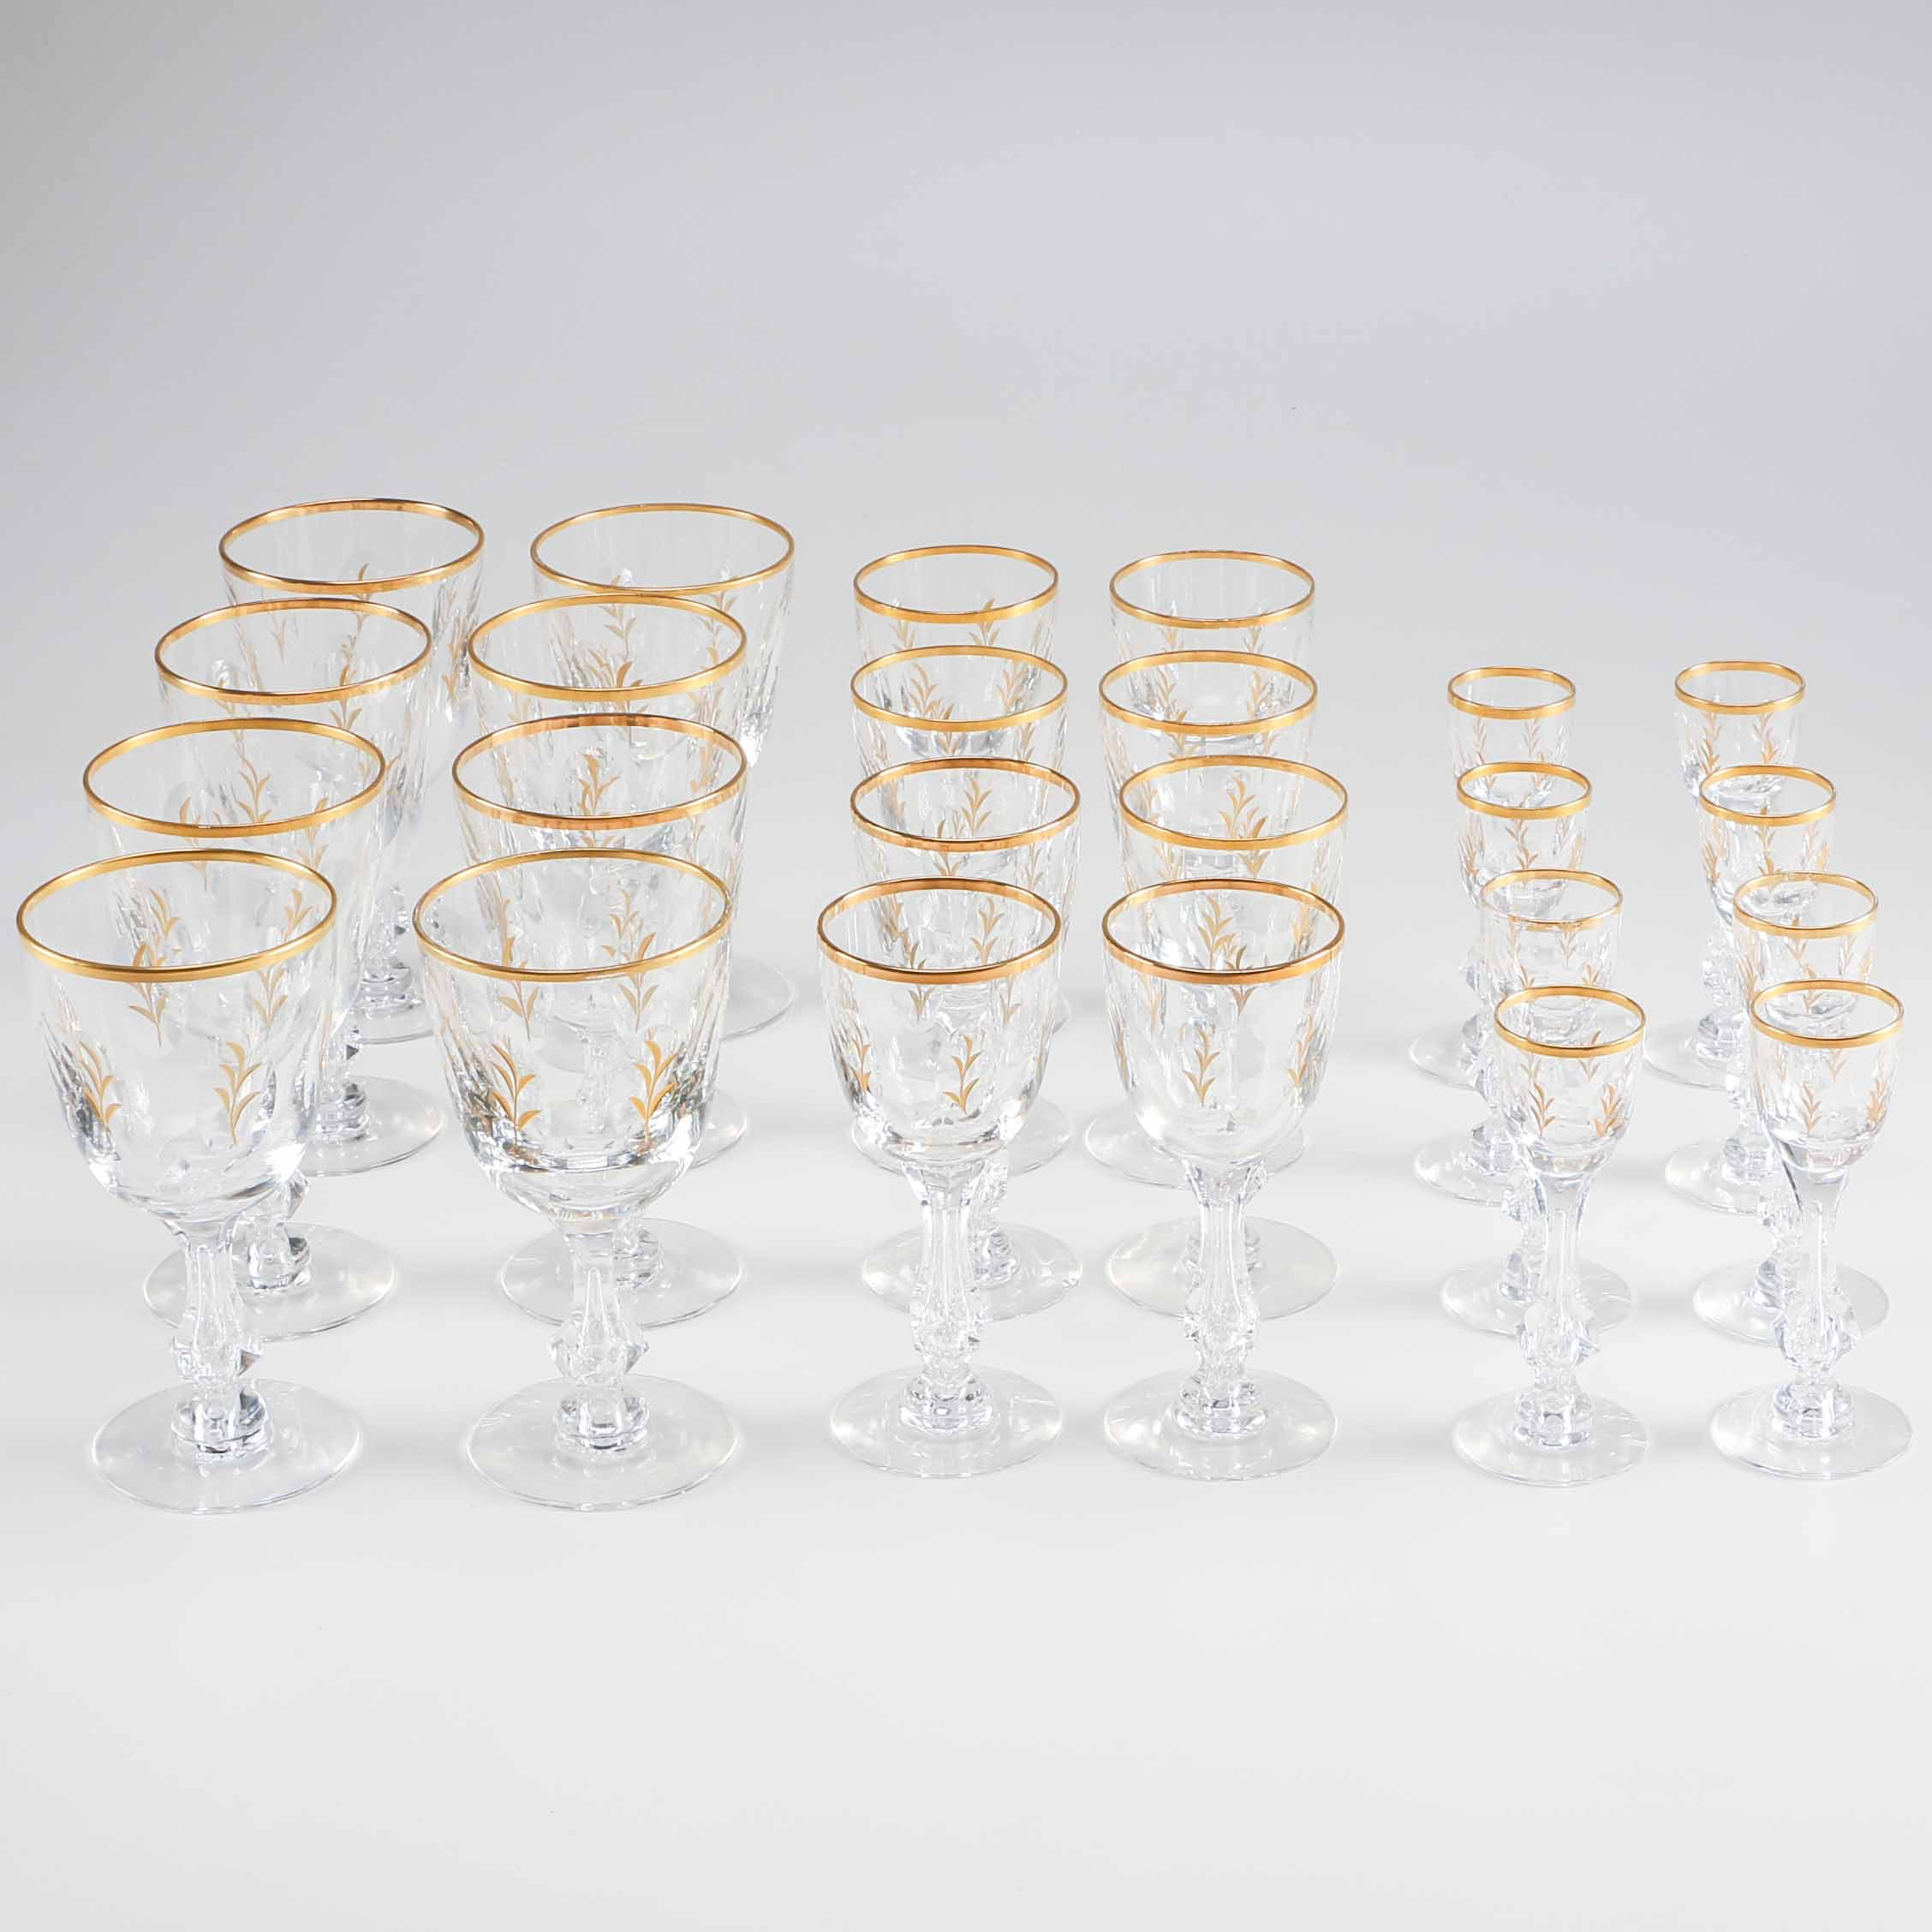 Chalet Crystal Stemware by Tiffin-Franciscan